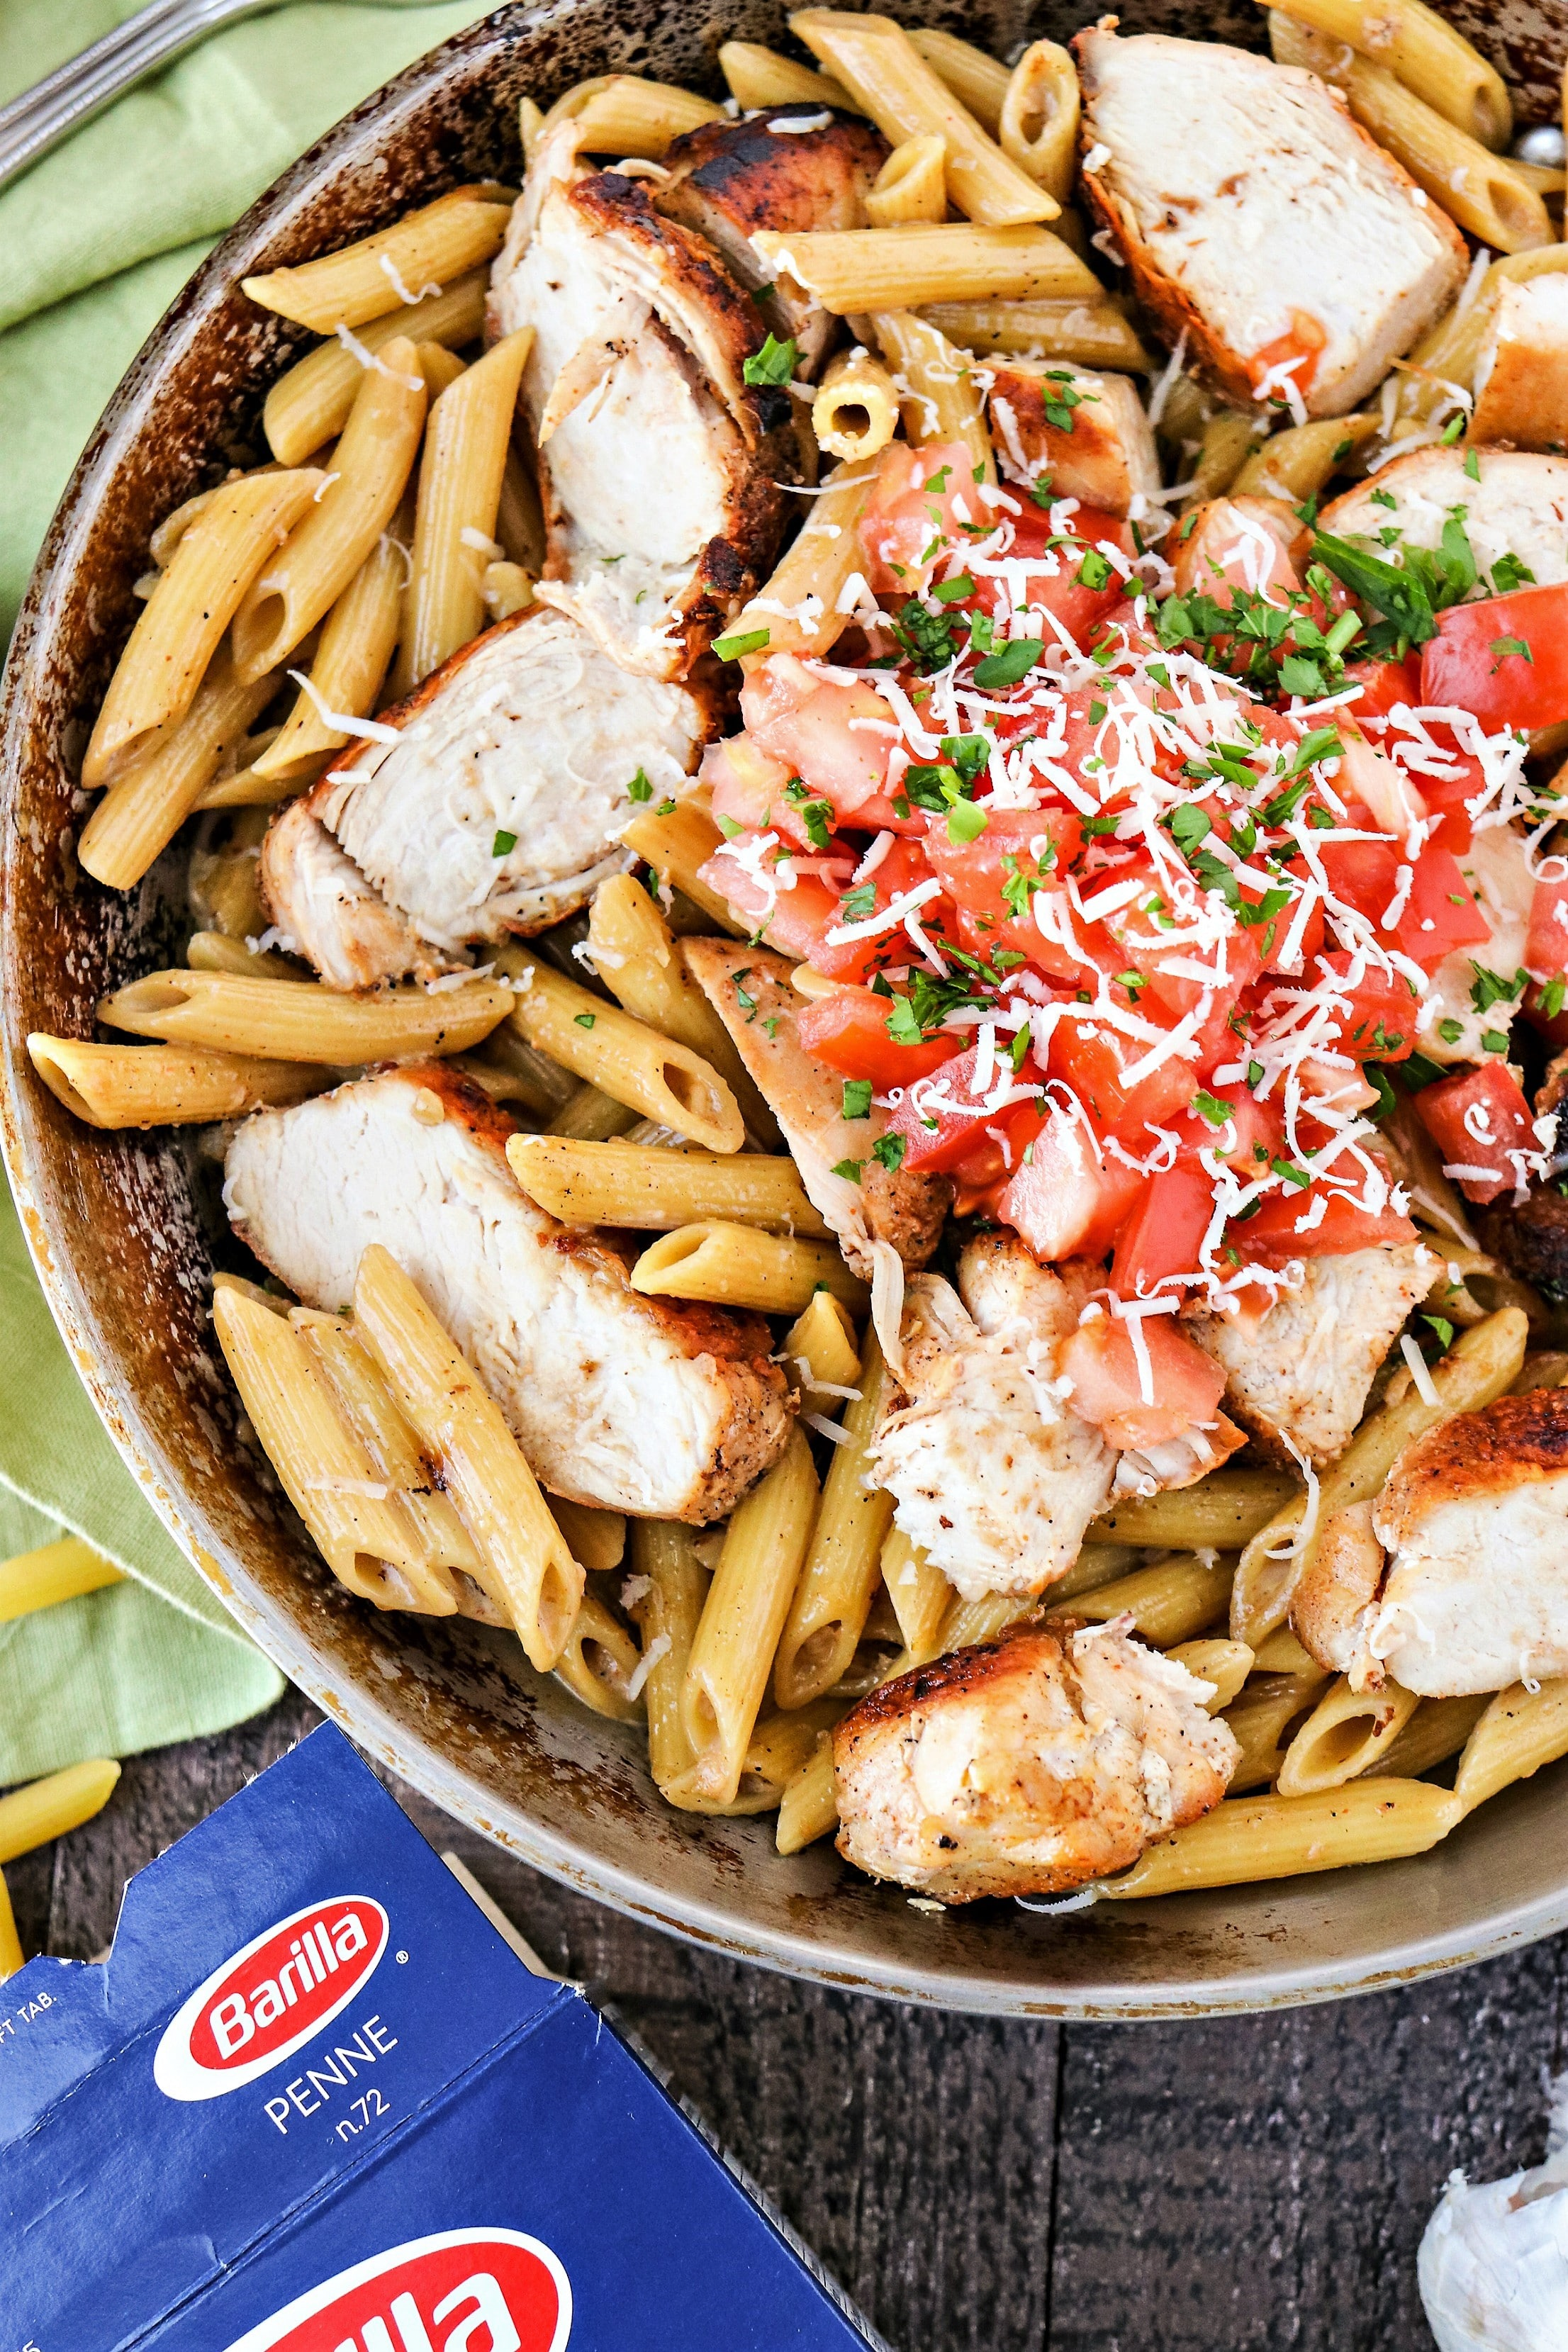 Cajun Chicken Pasta -Spicy Cajun chicken tossed in yummy Barilla penne pasta with a homemade Parmesan cream sauce. Such a perfect dish for date night! #WonderfulYourWay #ad